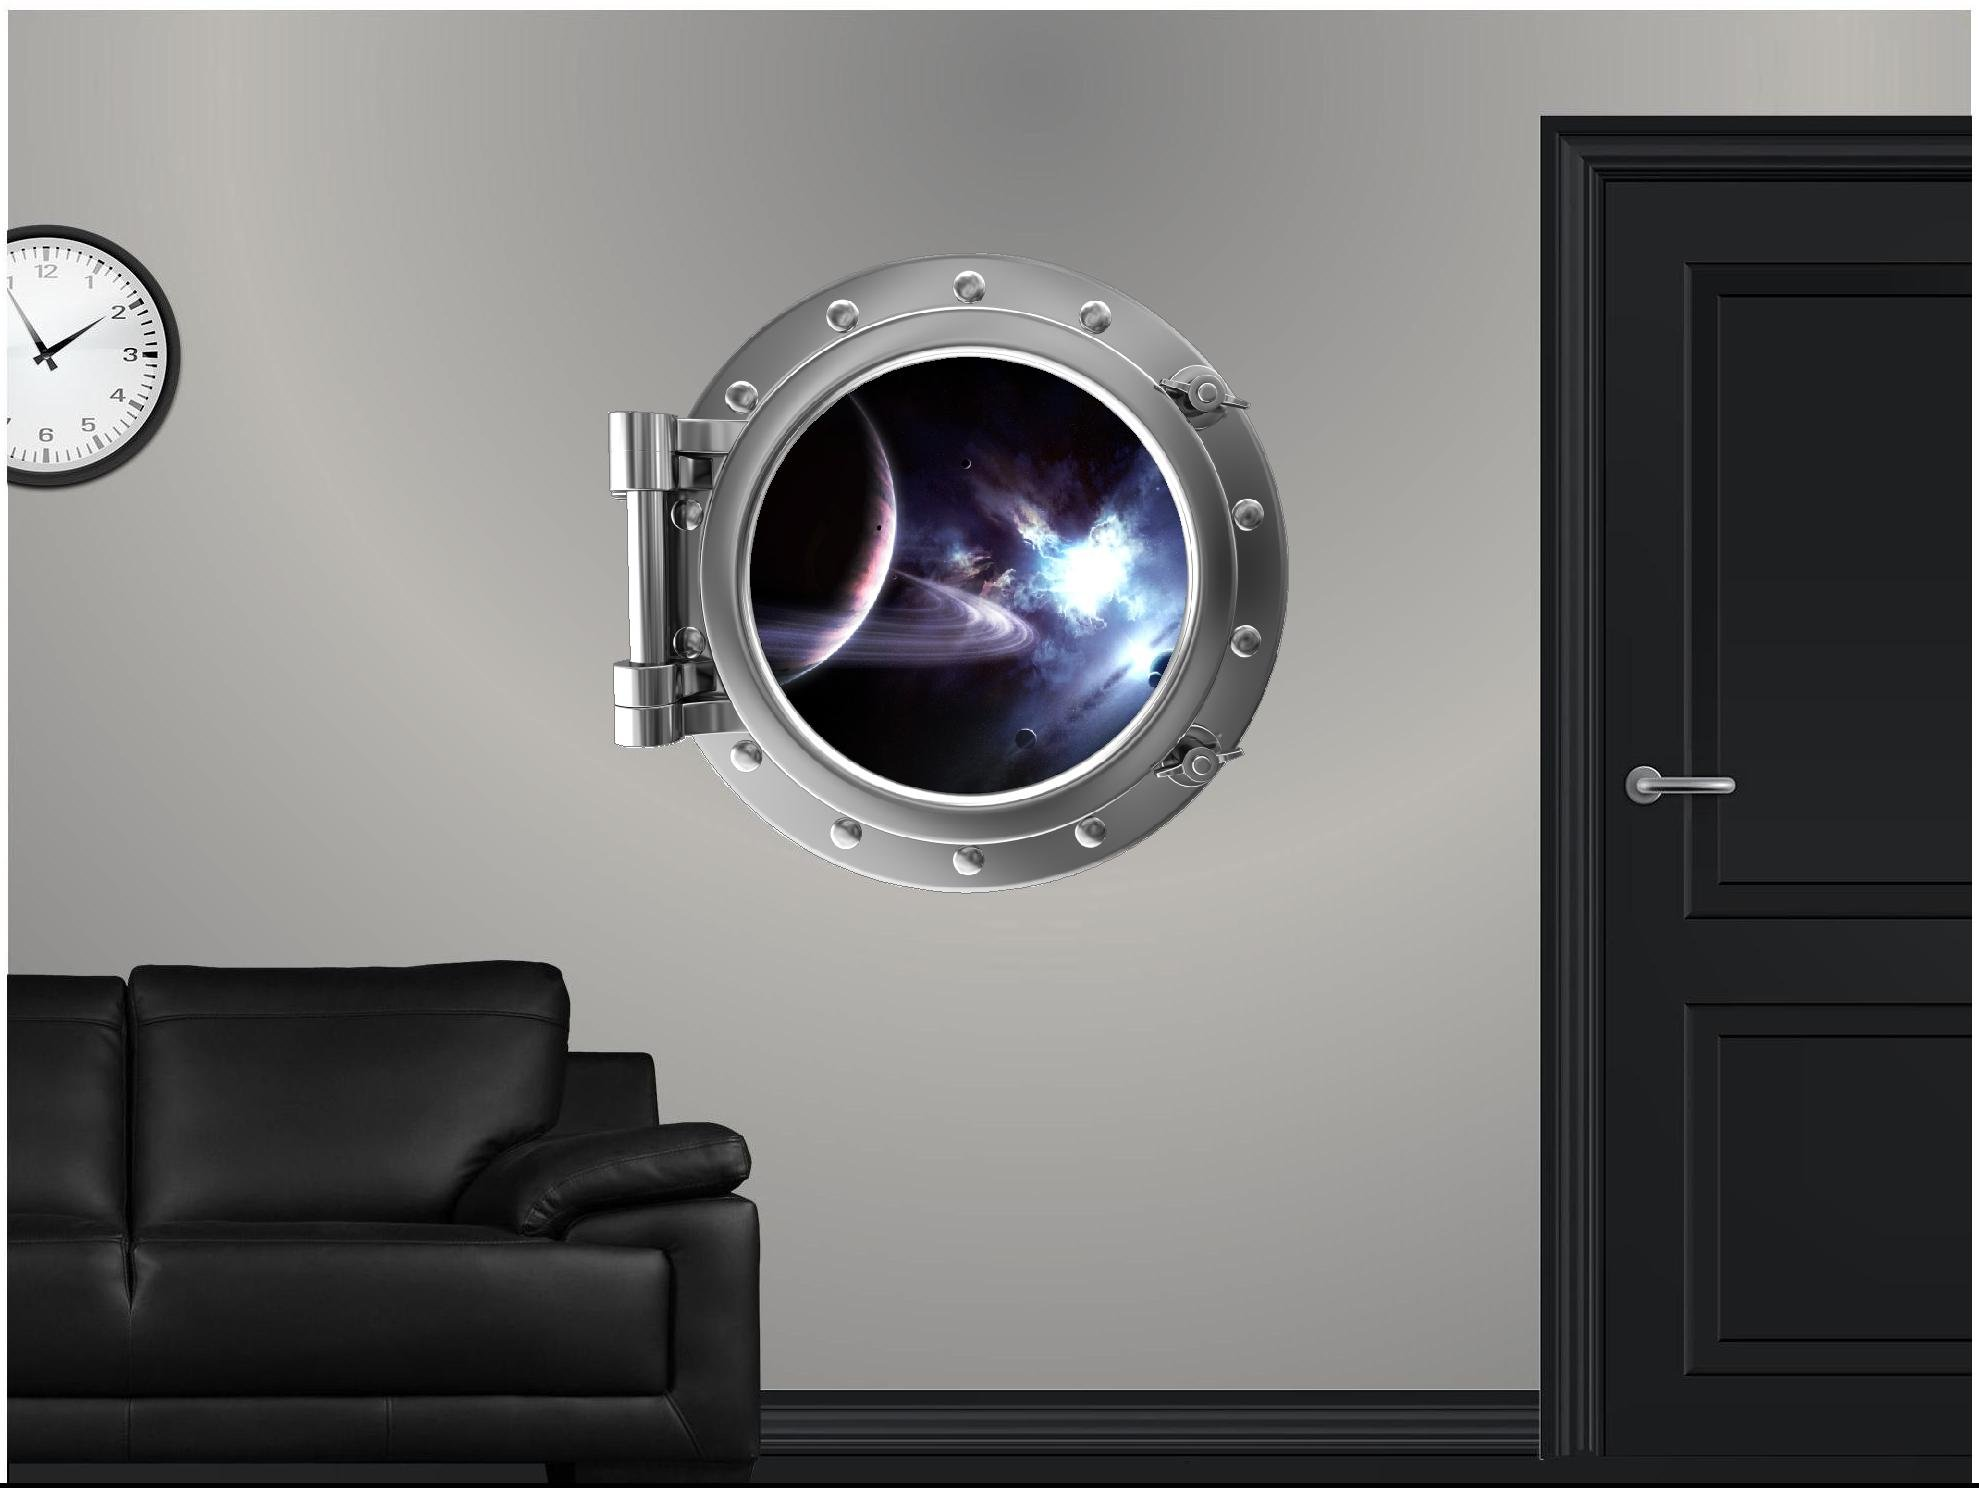 24'' PortScape Instant Space Window View Saturn & Moons #1 Wall Graphic porthole Decal Sticker Mural Home Kids Game Room Art Decor NEW !!